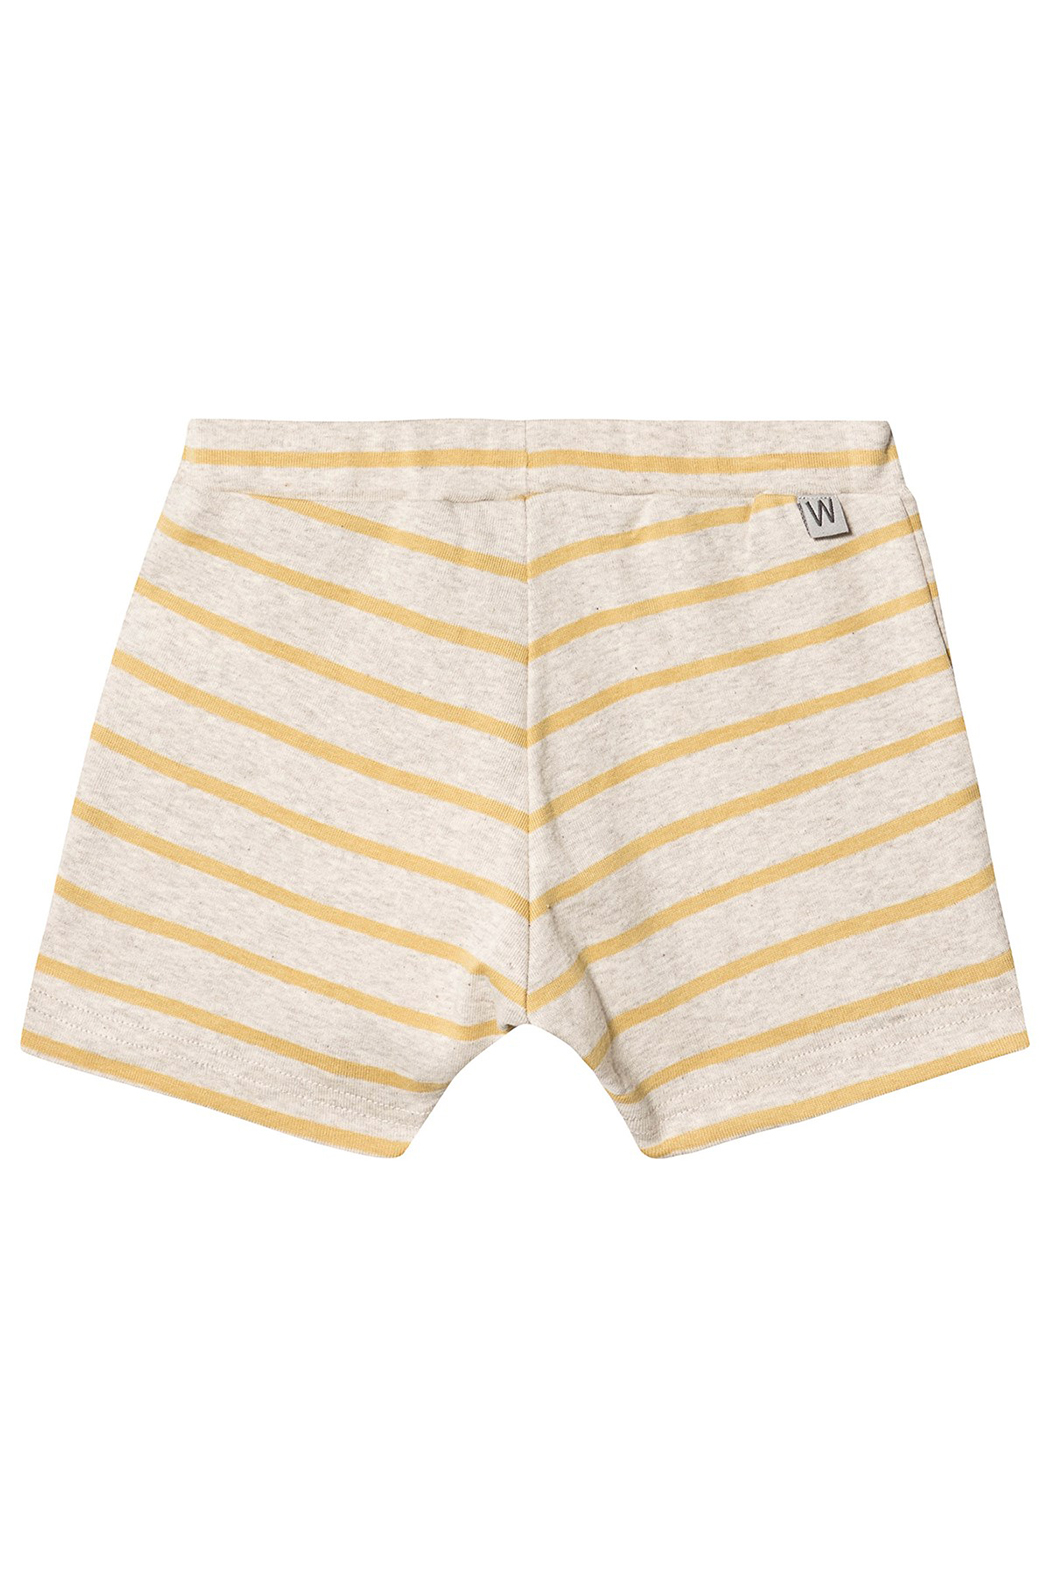 Wheat Aske Shorts - Front Full Image